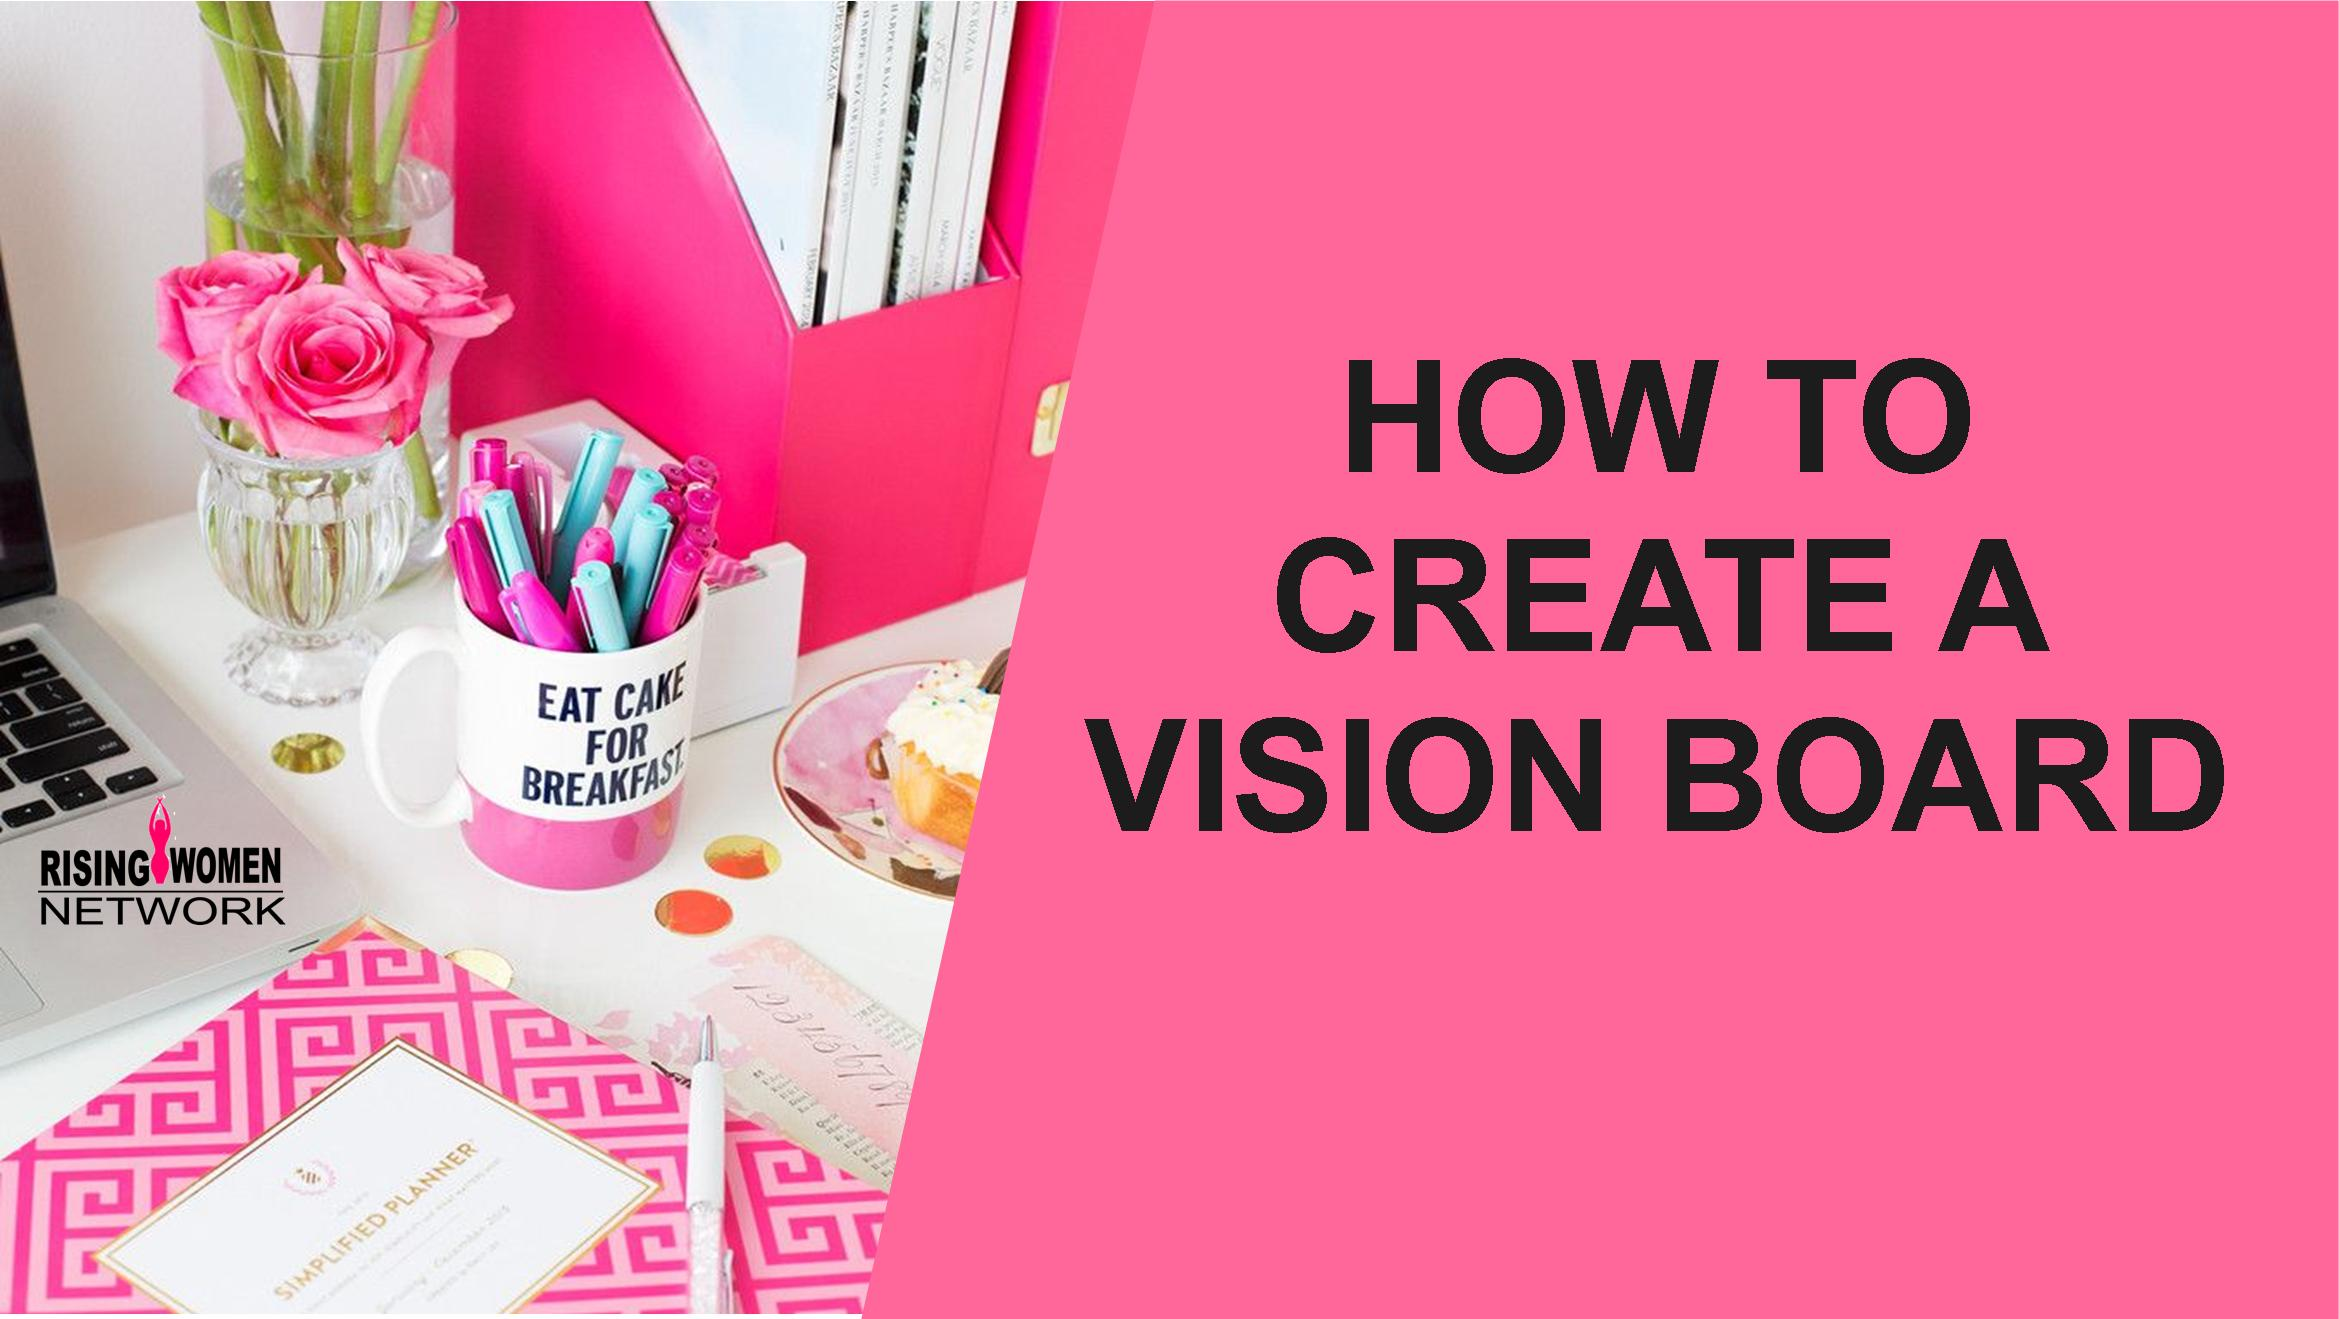 How To Create a Vision Board